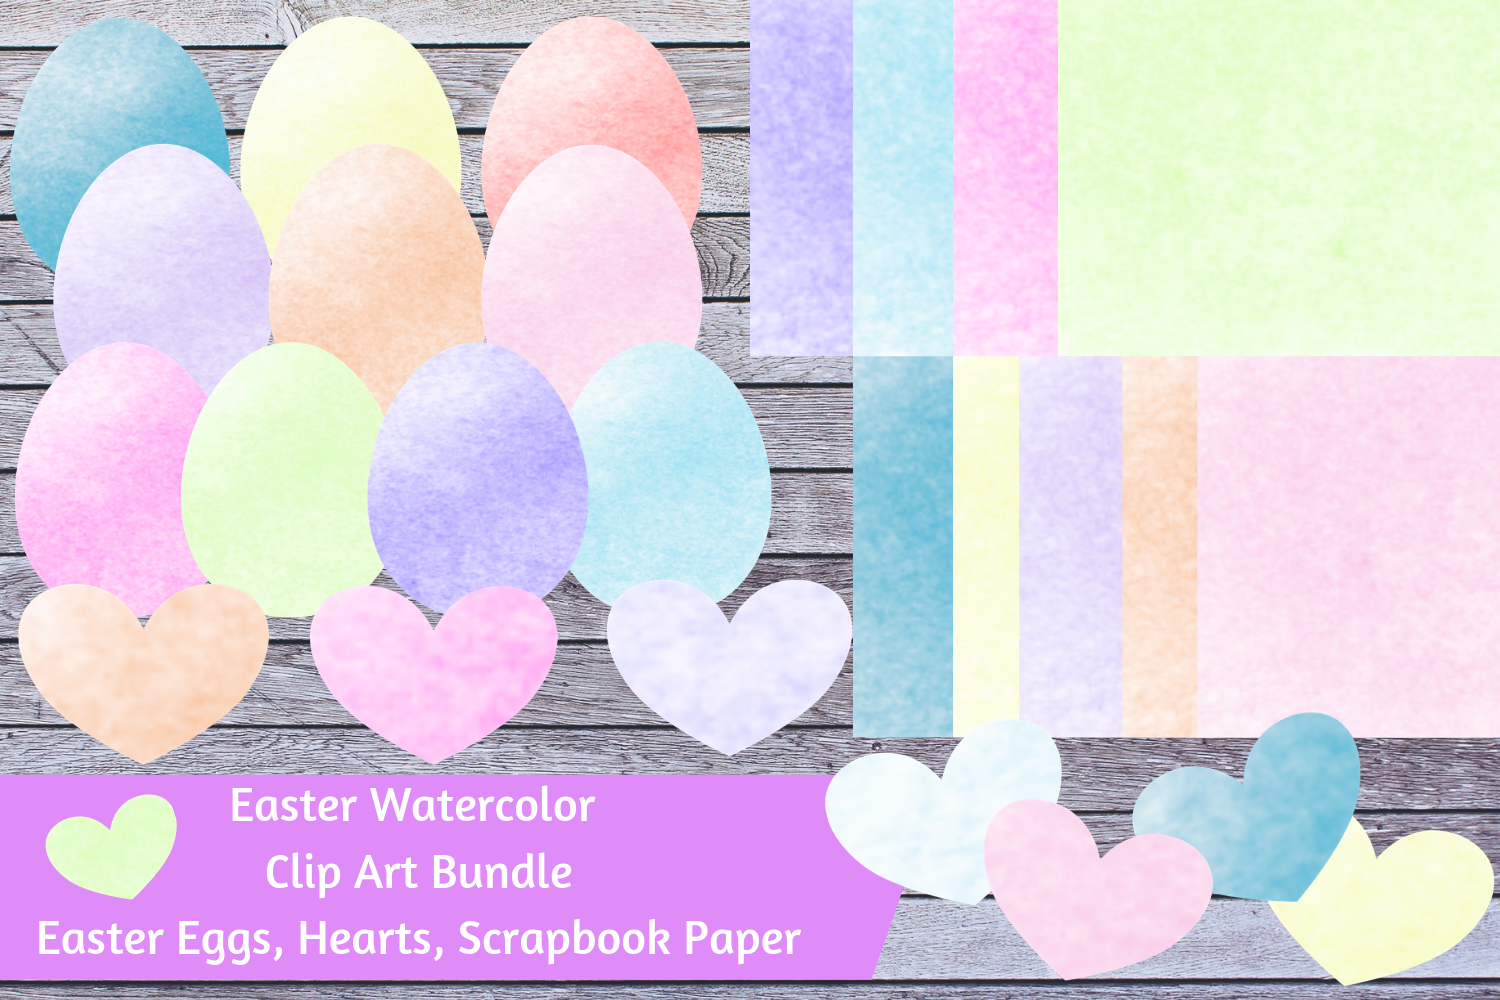 Watercolor Easter Bundle - Easter Eggs, Hearts, Paper example image 1